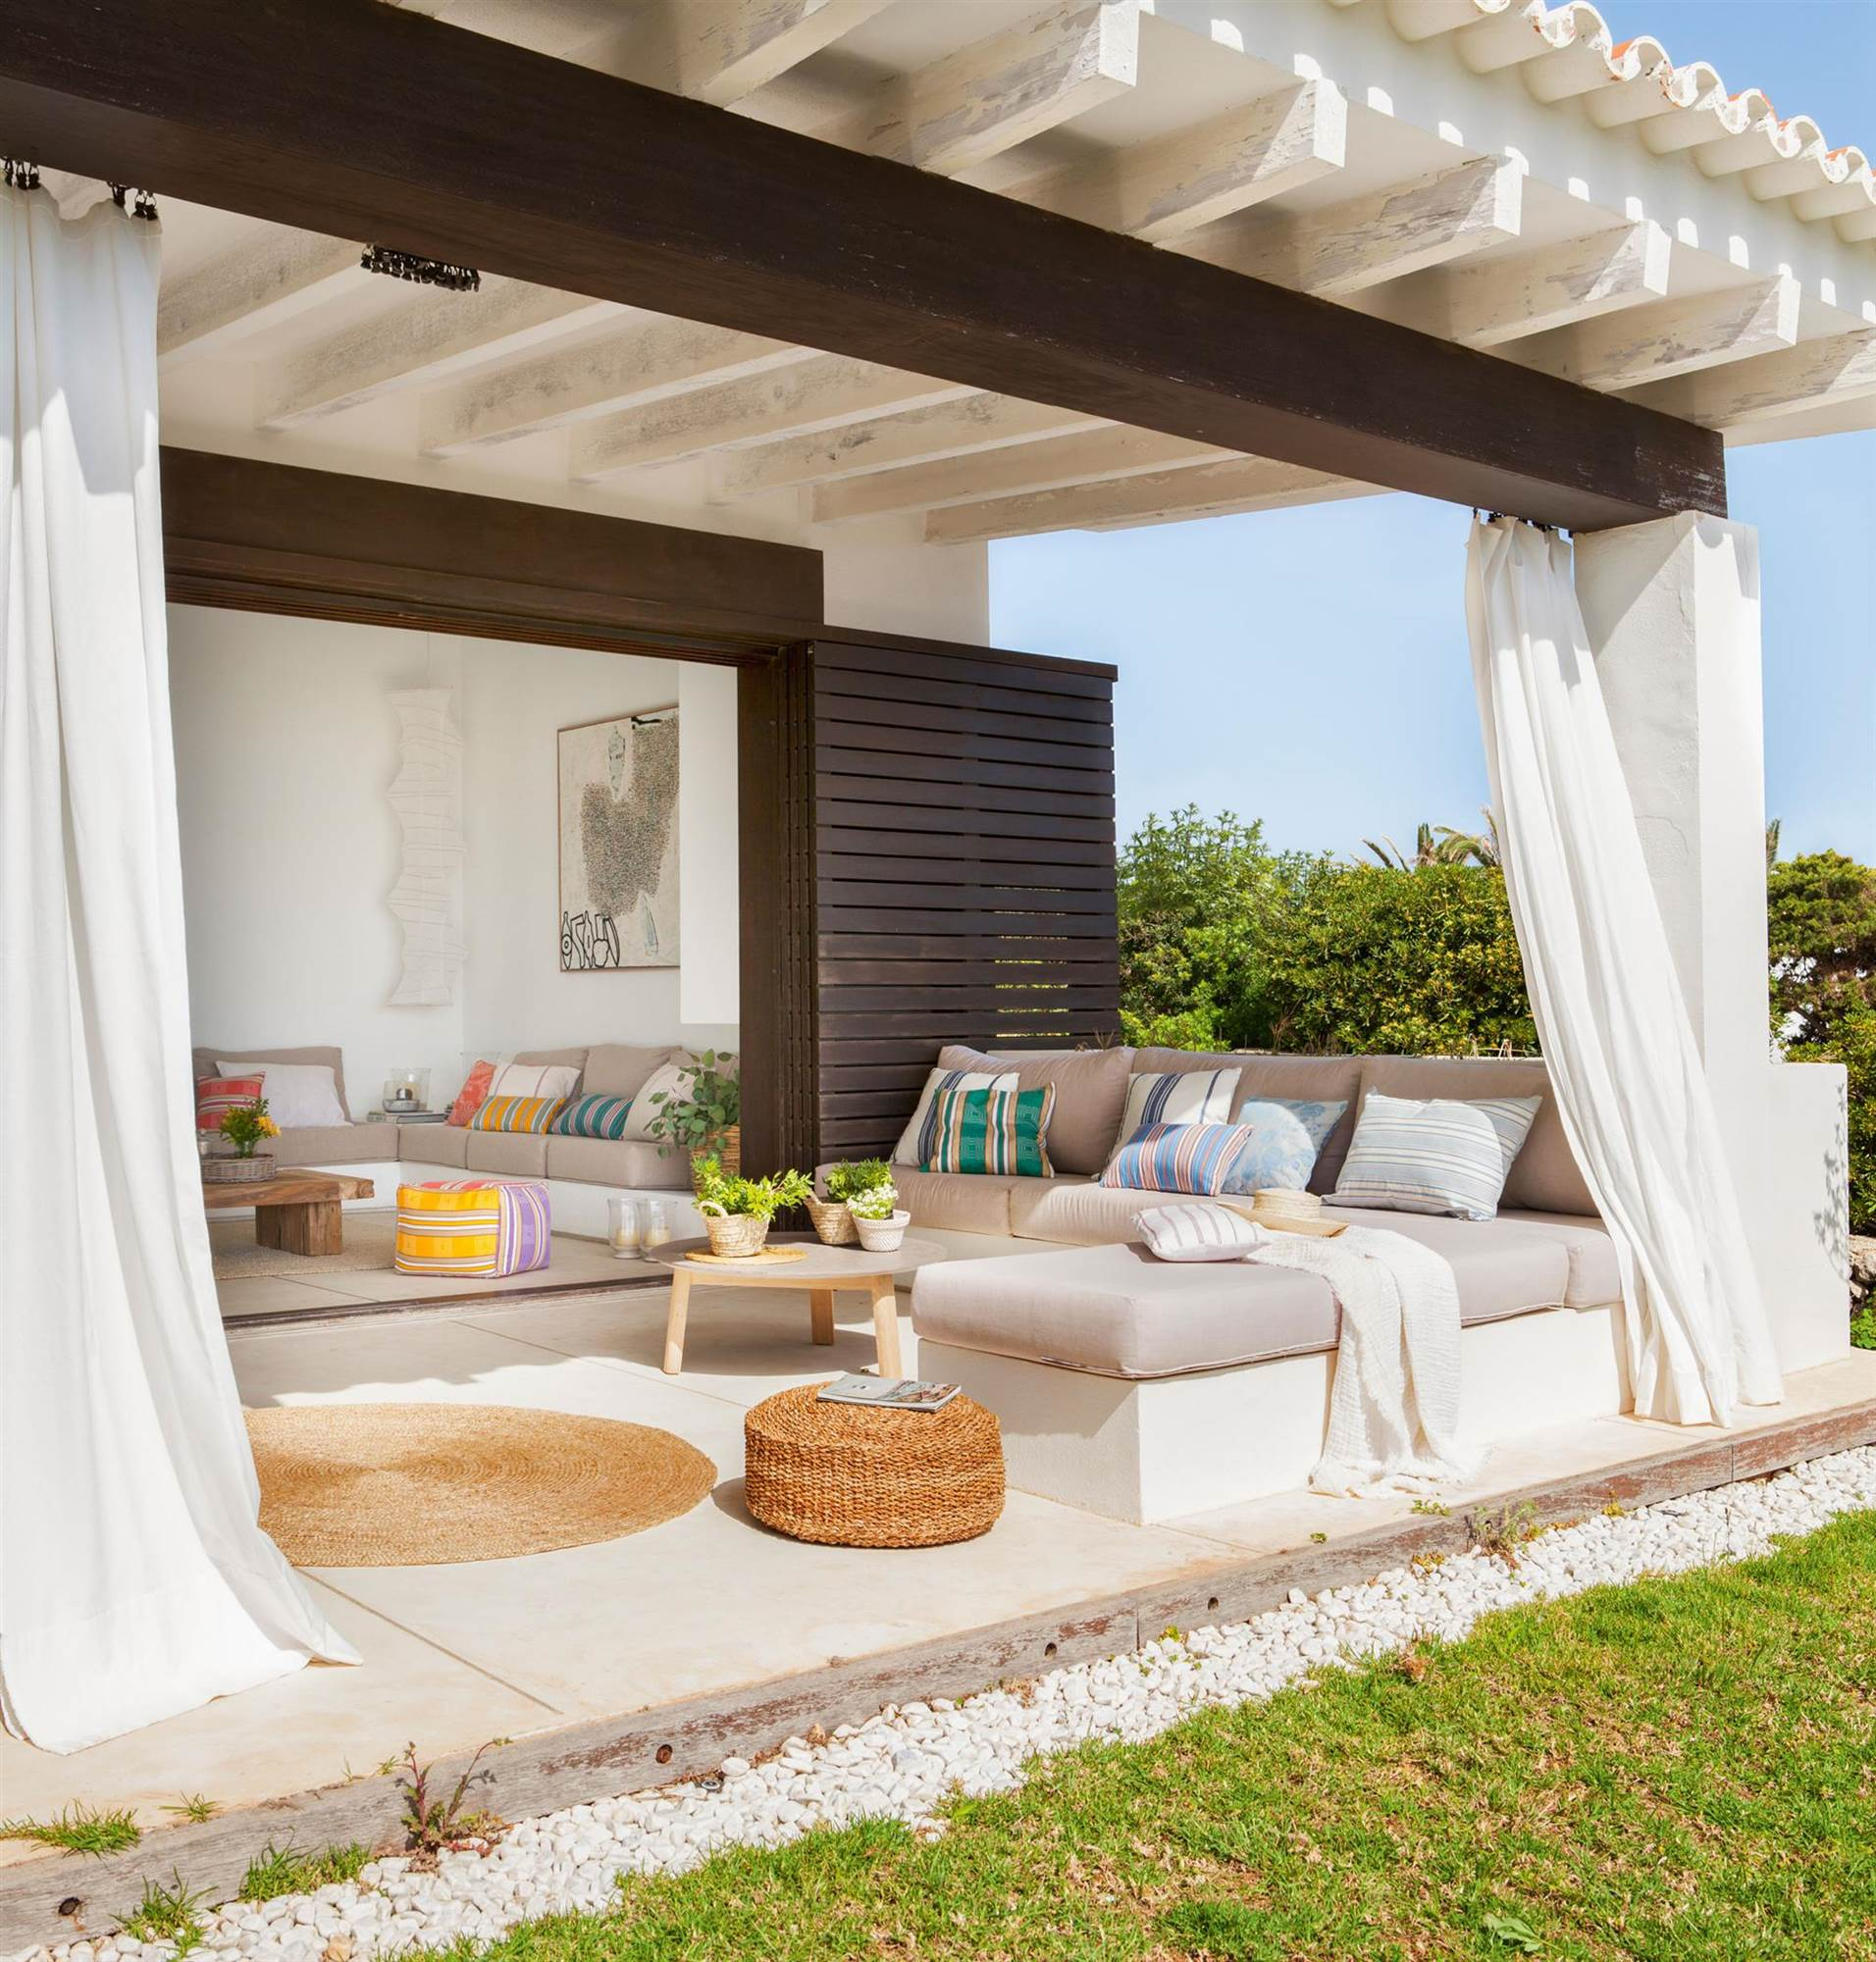 Crear un rinc n chill out en casa for Tipos de techos para porches